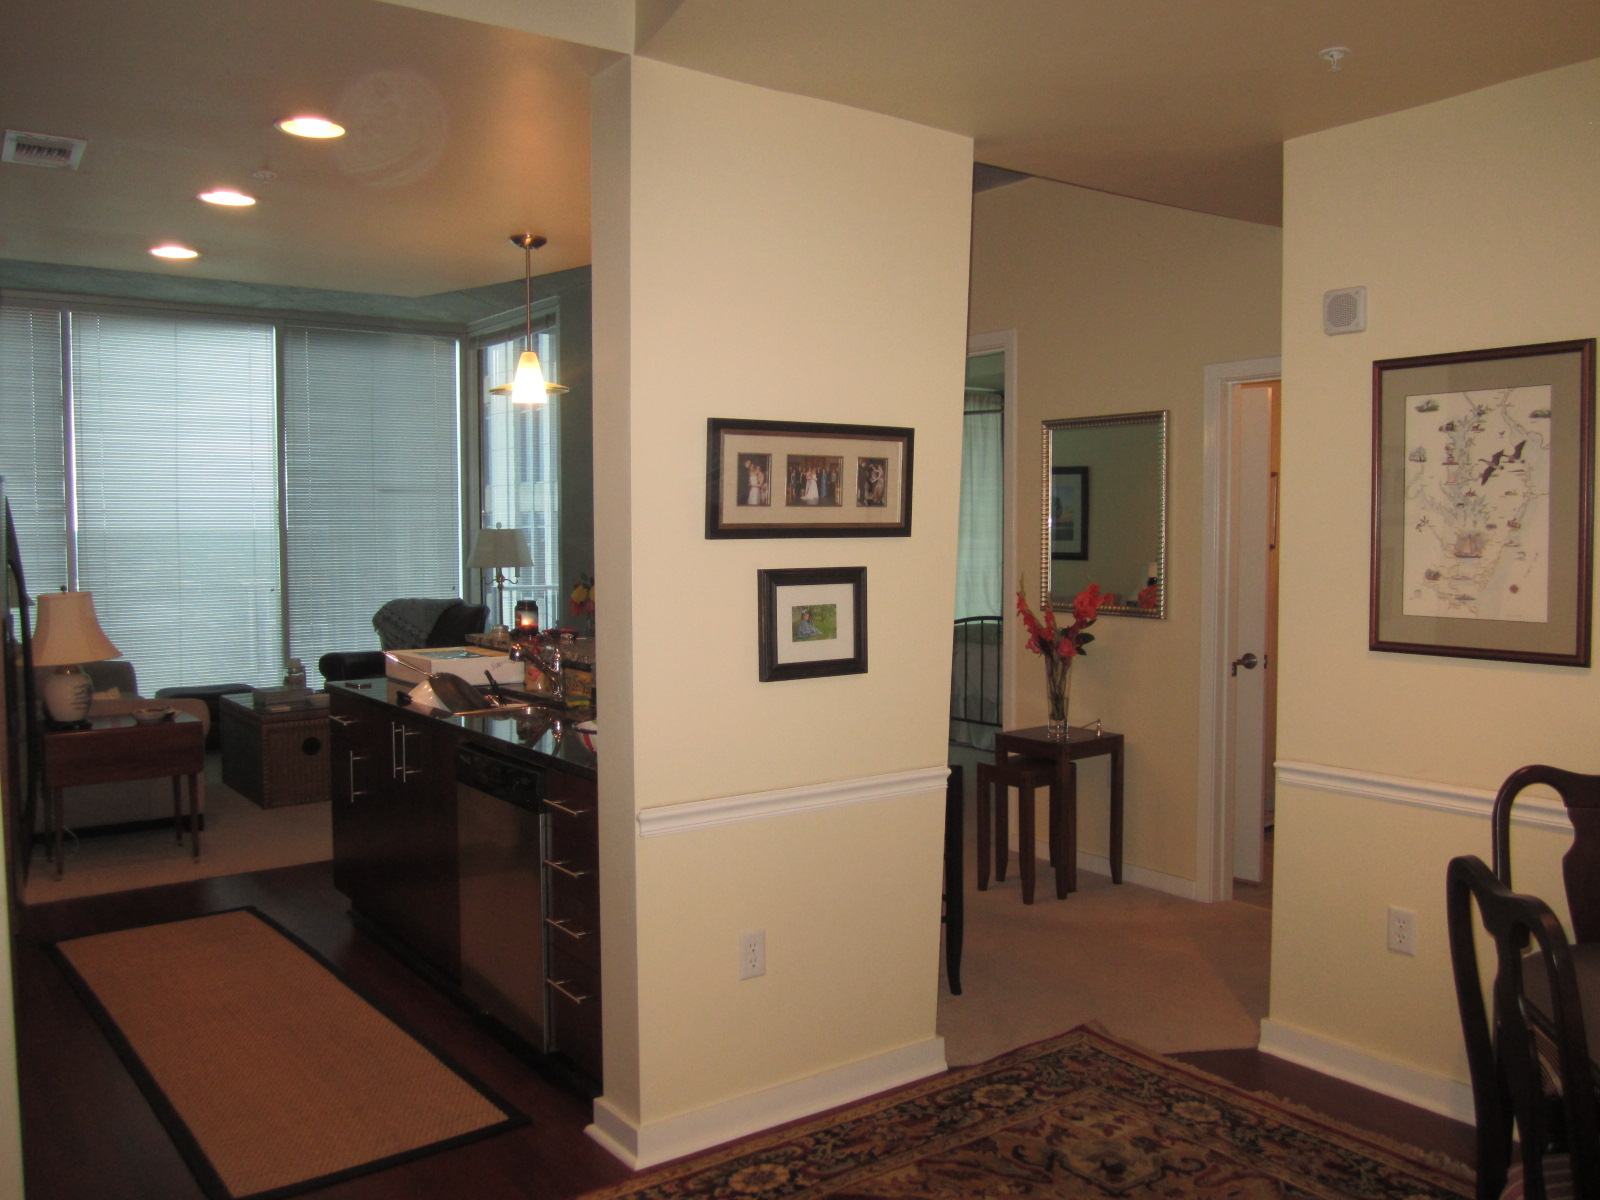 Creamy Is The Trim And Jersey Cream Wall Of Course They Choose Other Colors For Rooms But This Main Color Living Areas